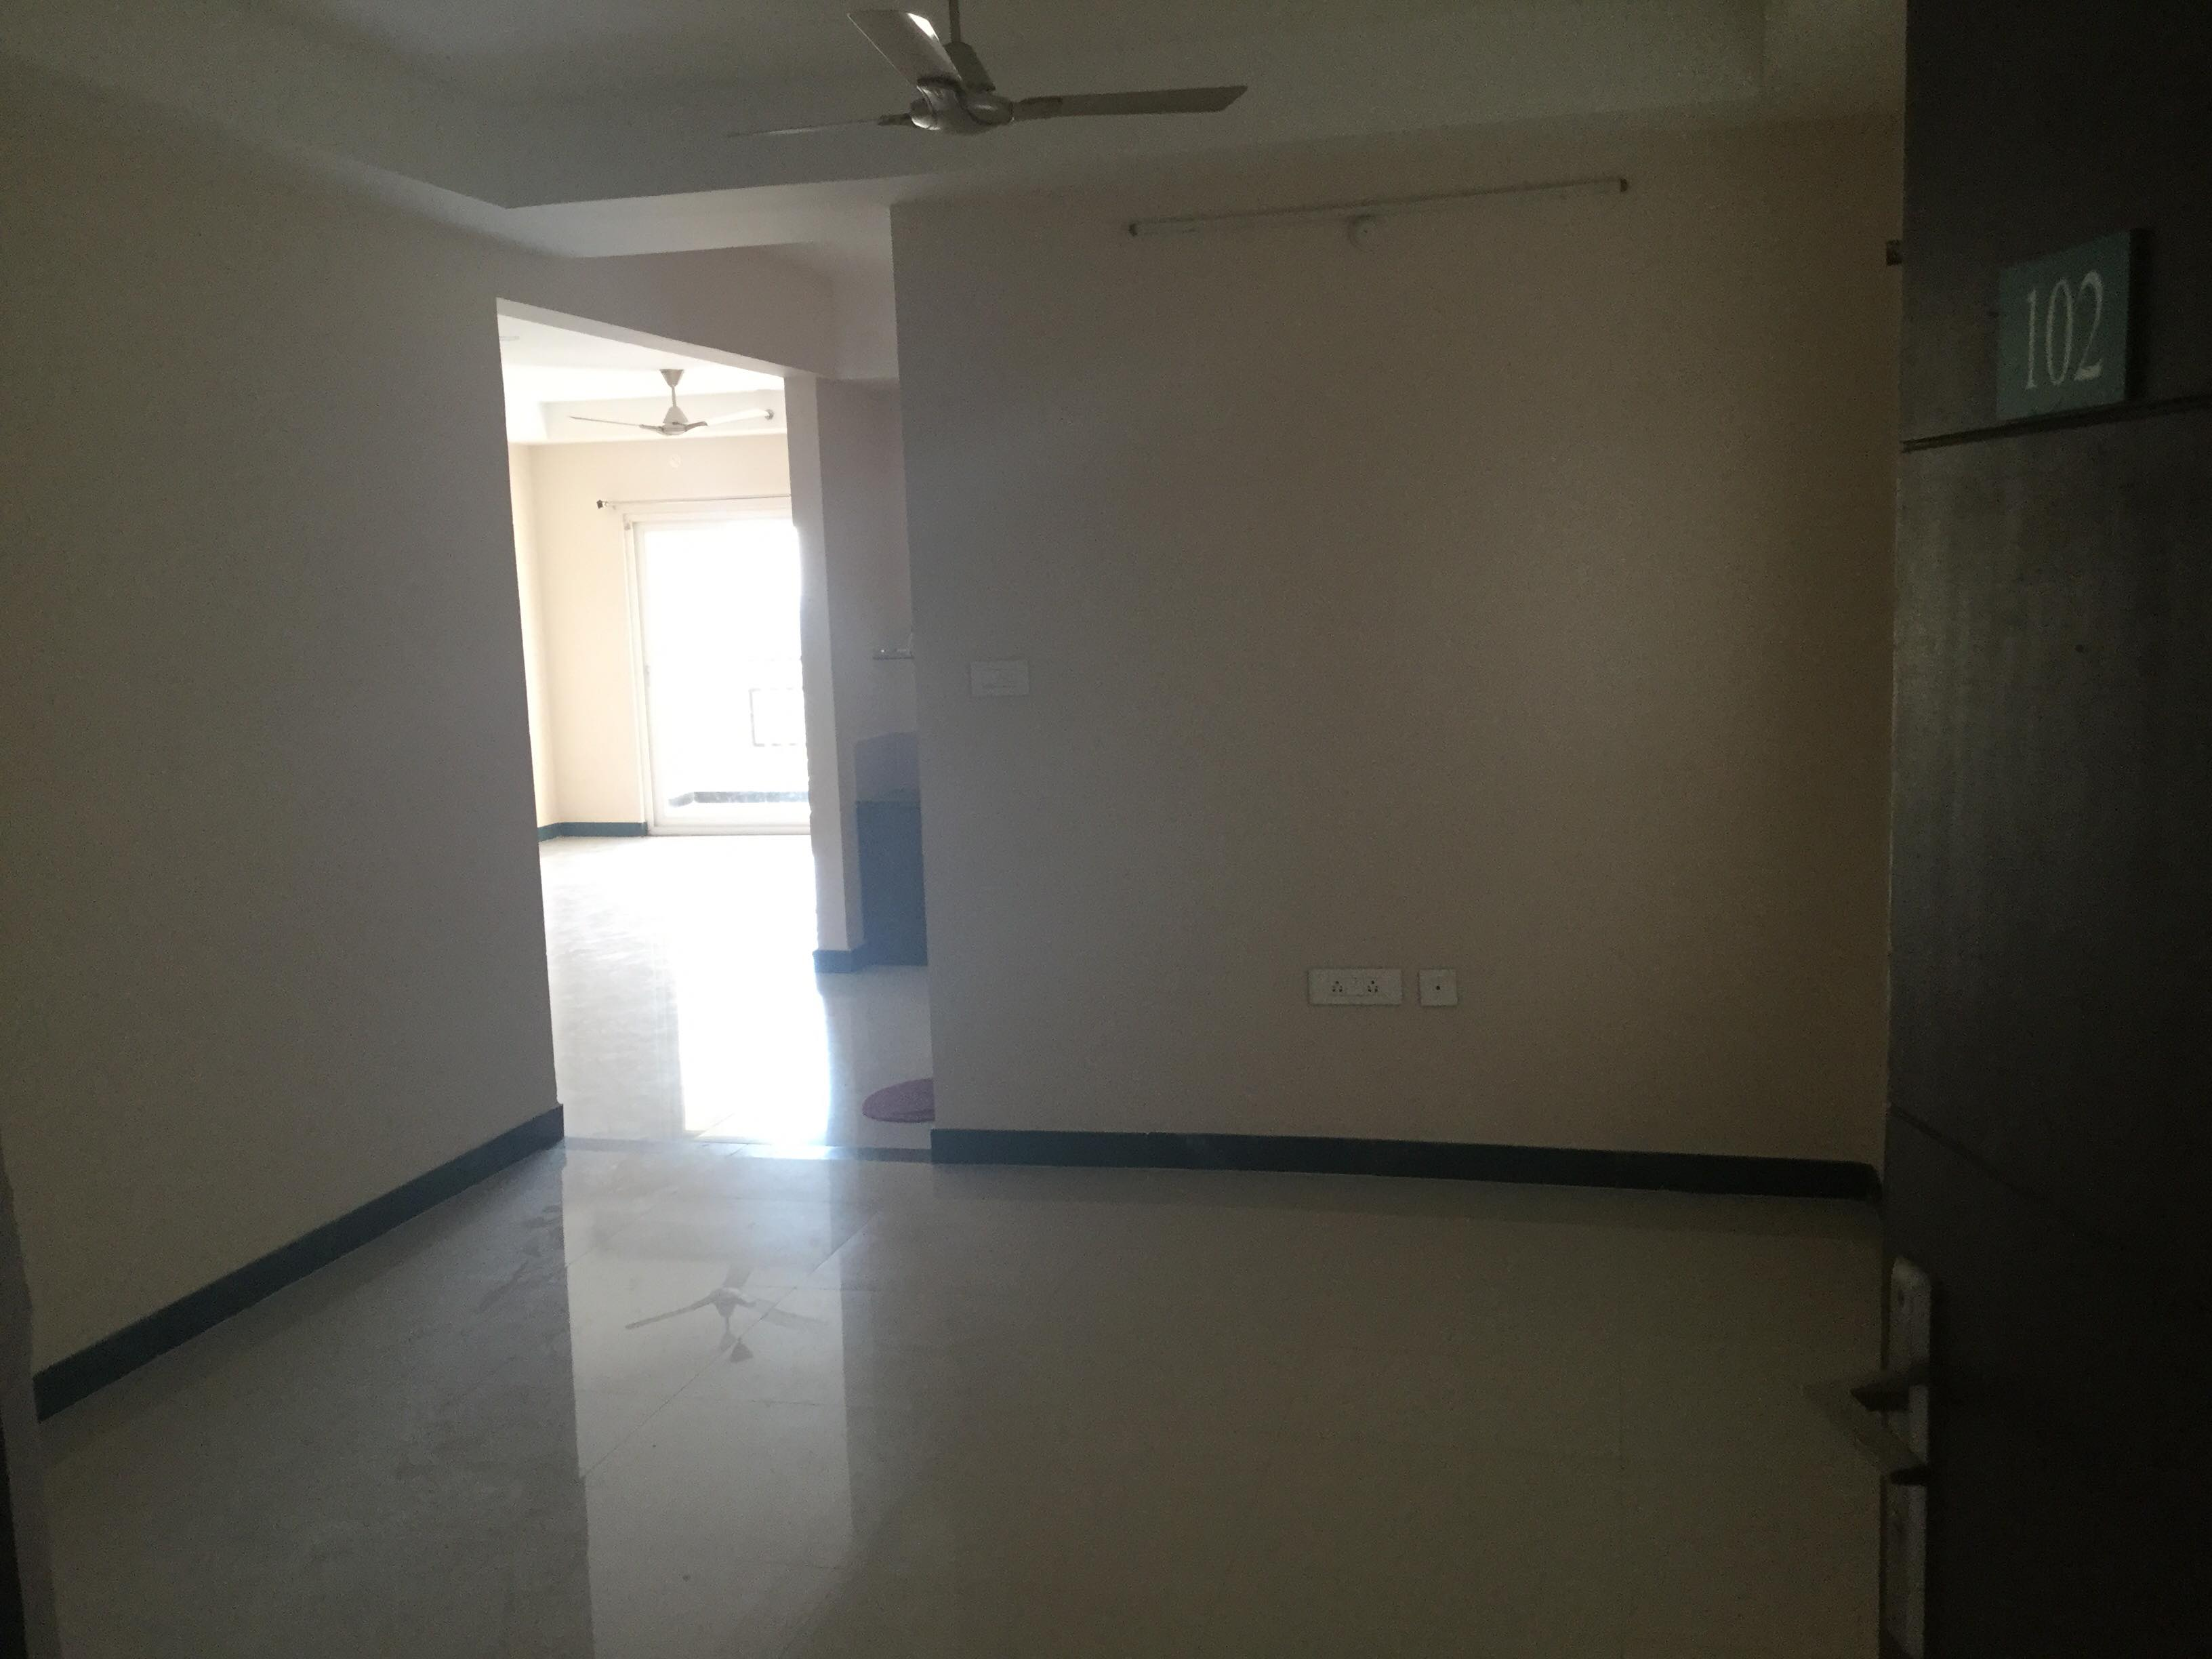 3BHK-1700sqft-flat-for-rent-in-Madhapur-Hyderabad-TP2143174